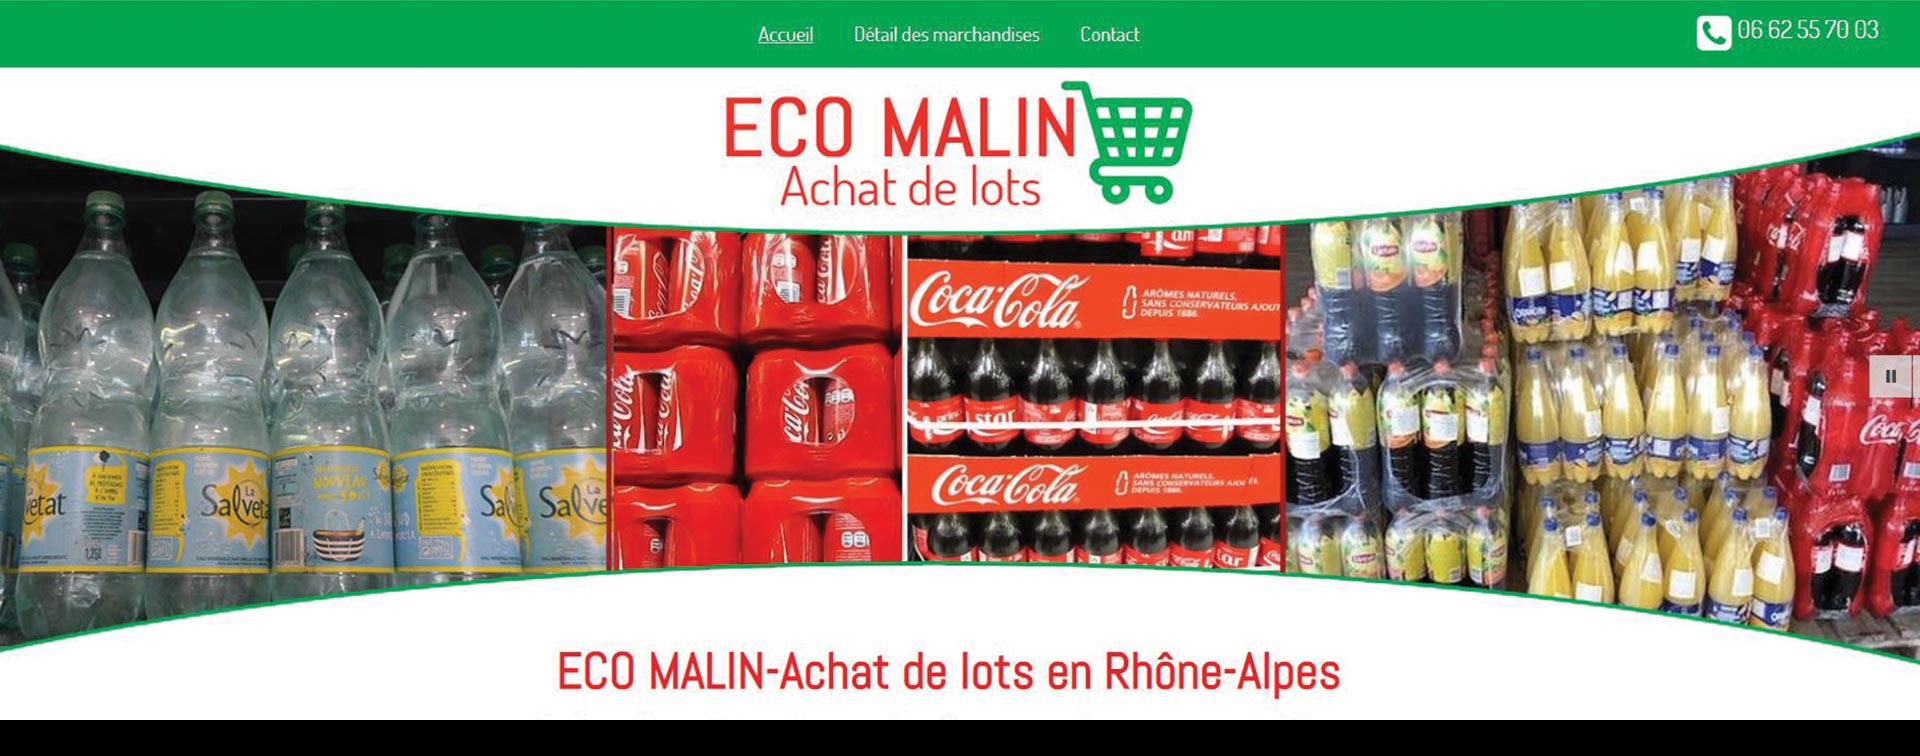 Eco Malin - avis sur sa campagne Google Ads faite par local.fr